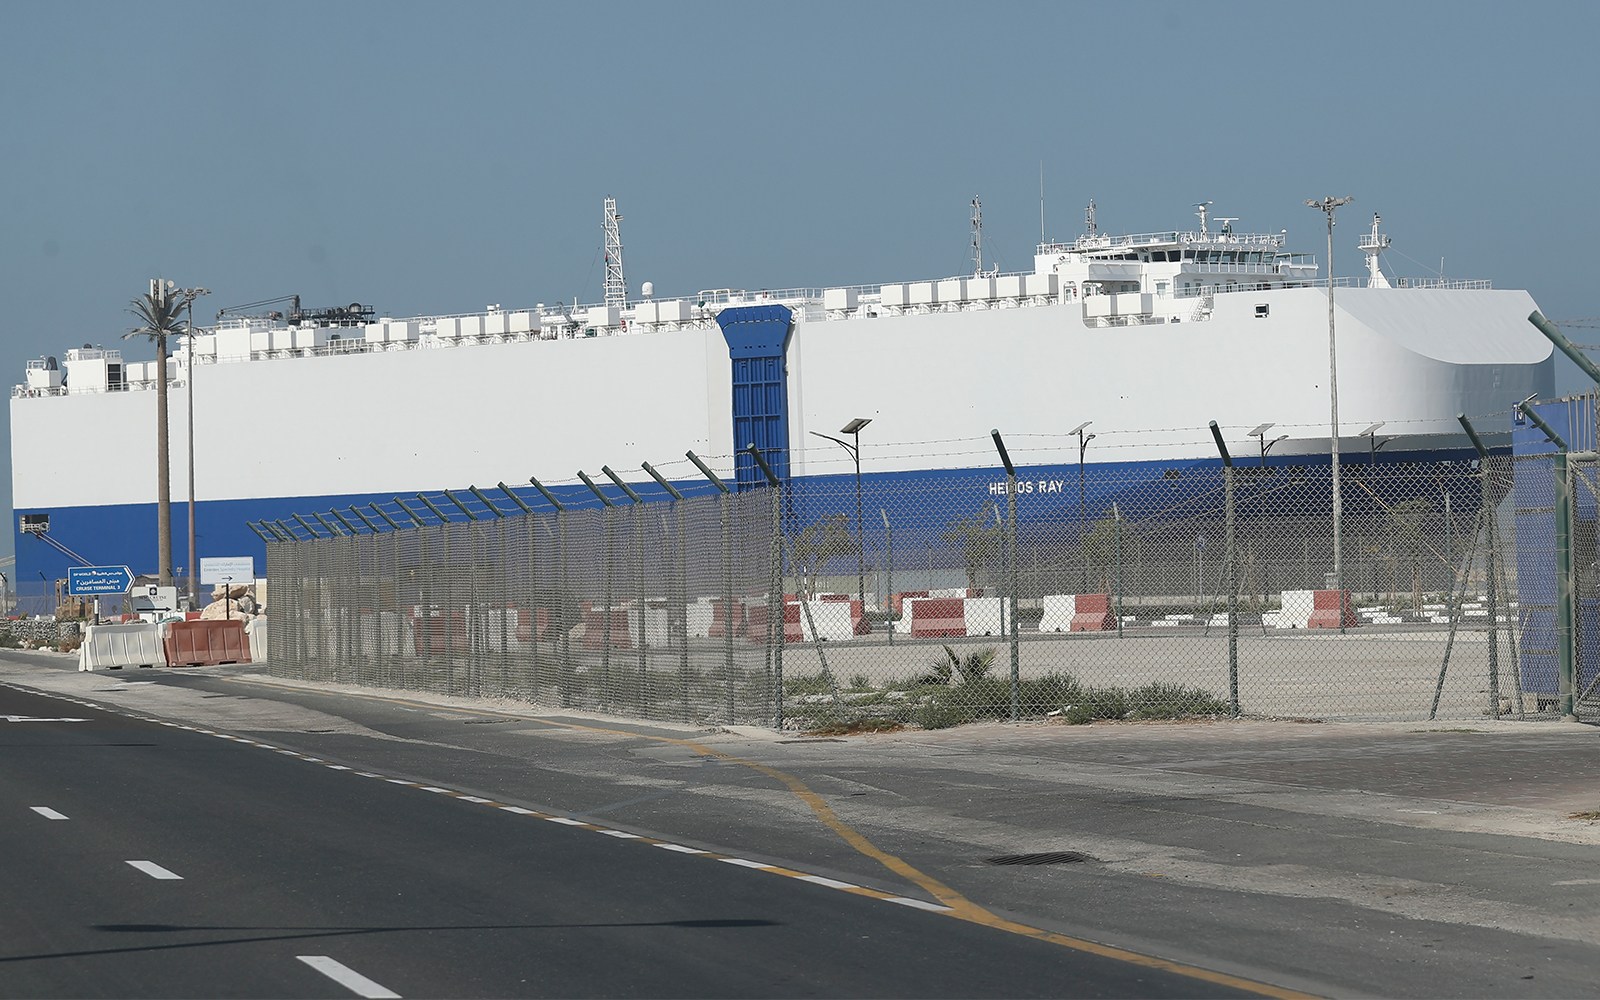 The Israeli-owned cargo ship Helios Ray sits docked in port in Dubai United Arab Emirates Feb. 28 2021